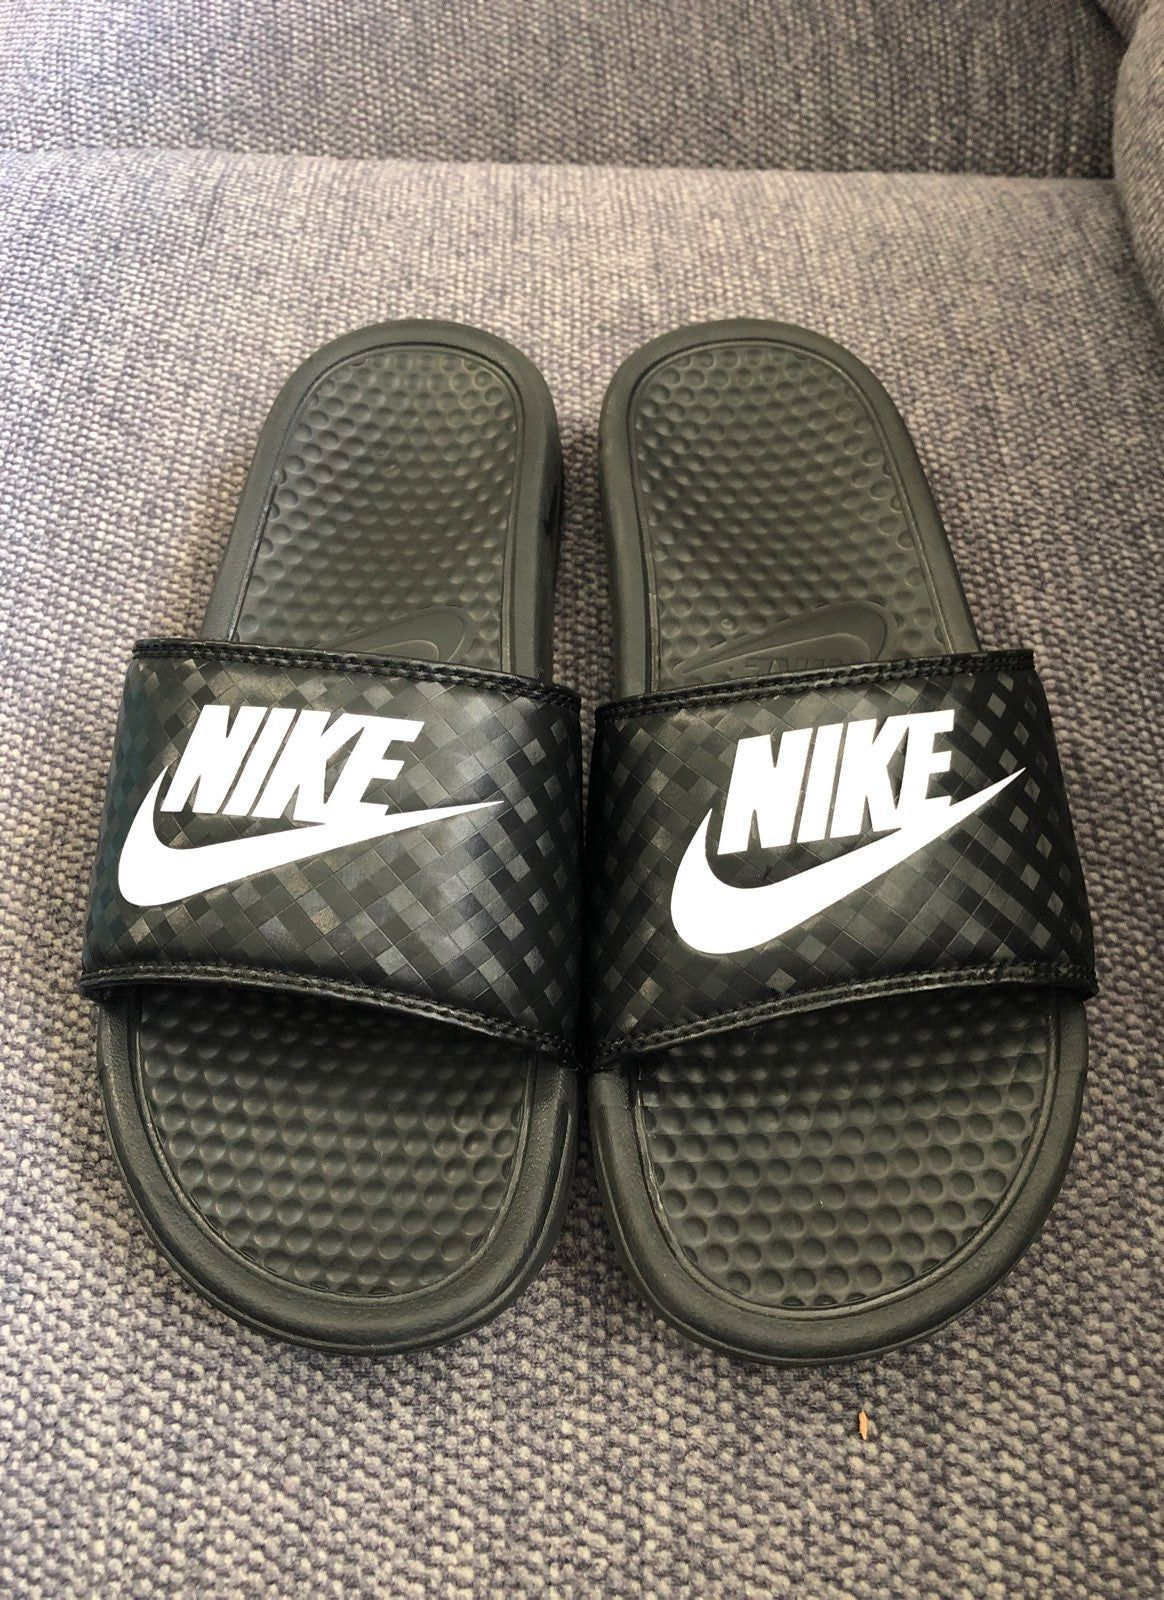 Gently used Nuke Slides. Size 8 womens Nike sandals